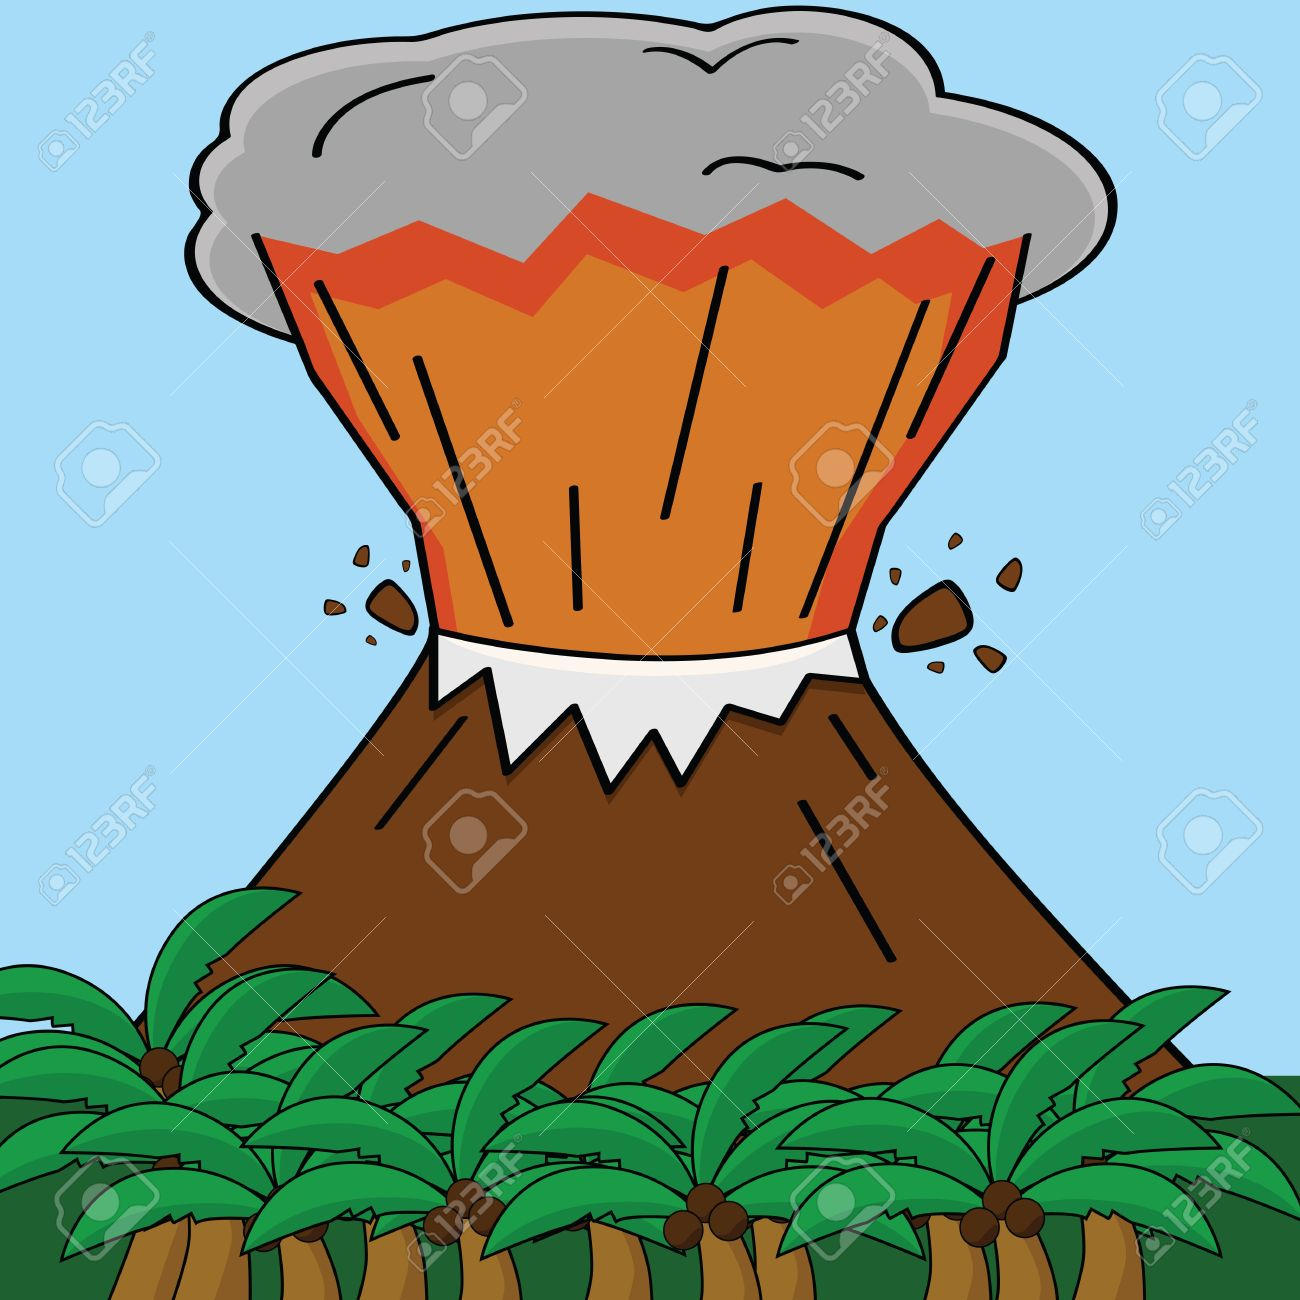 Island Volcano Eruption clipart #17, Download drawings